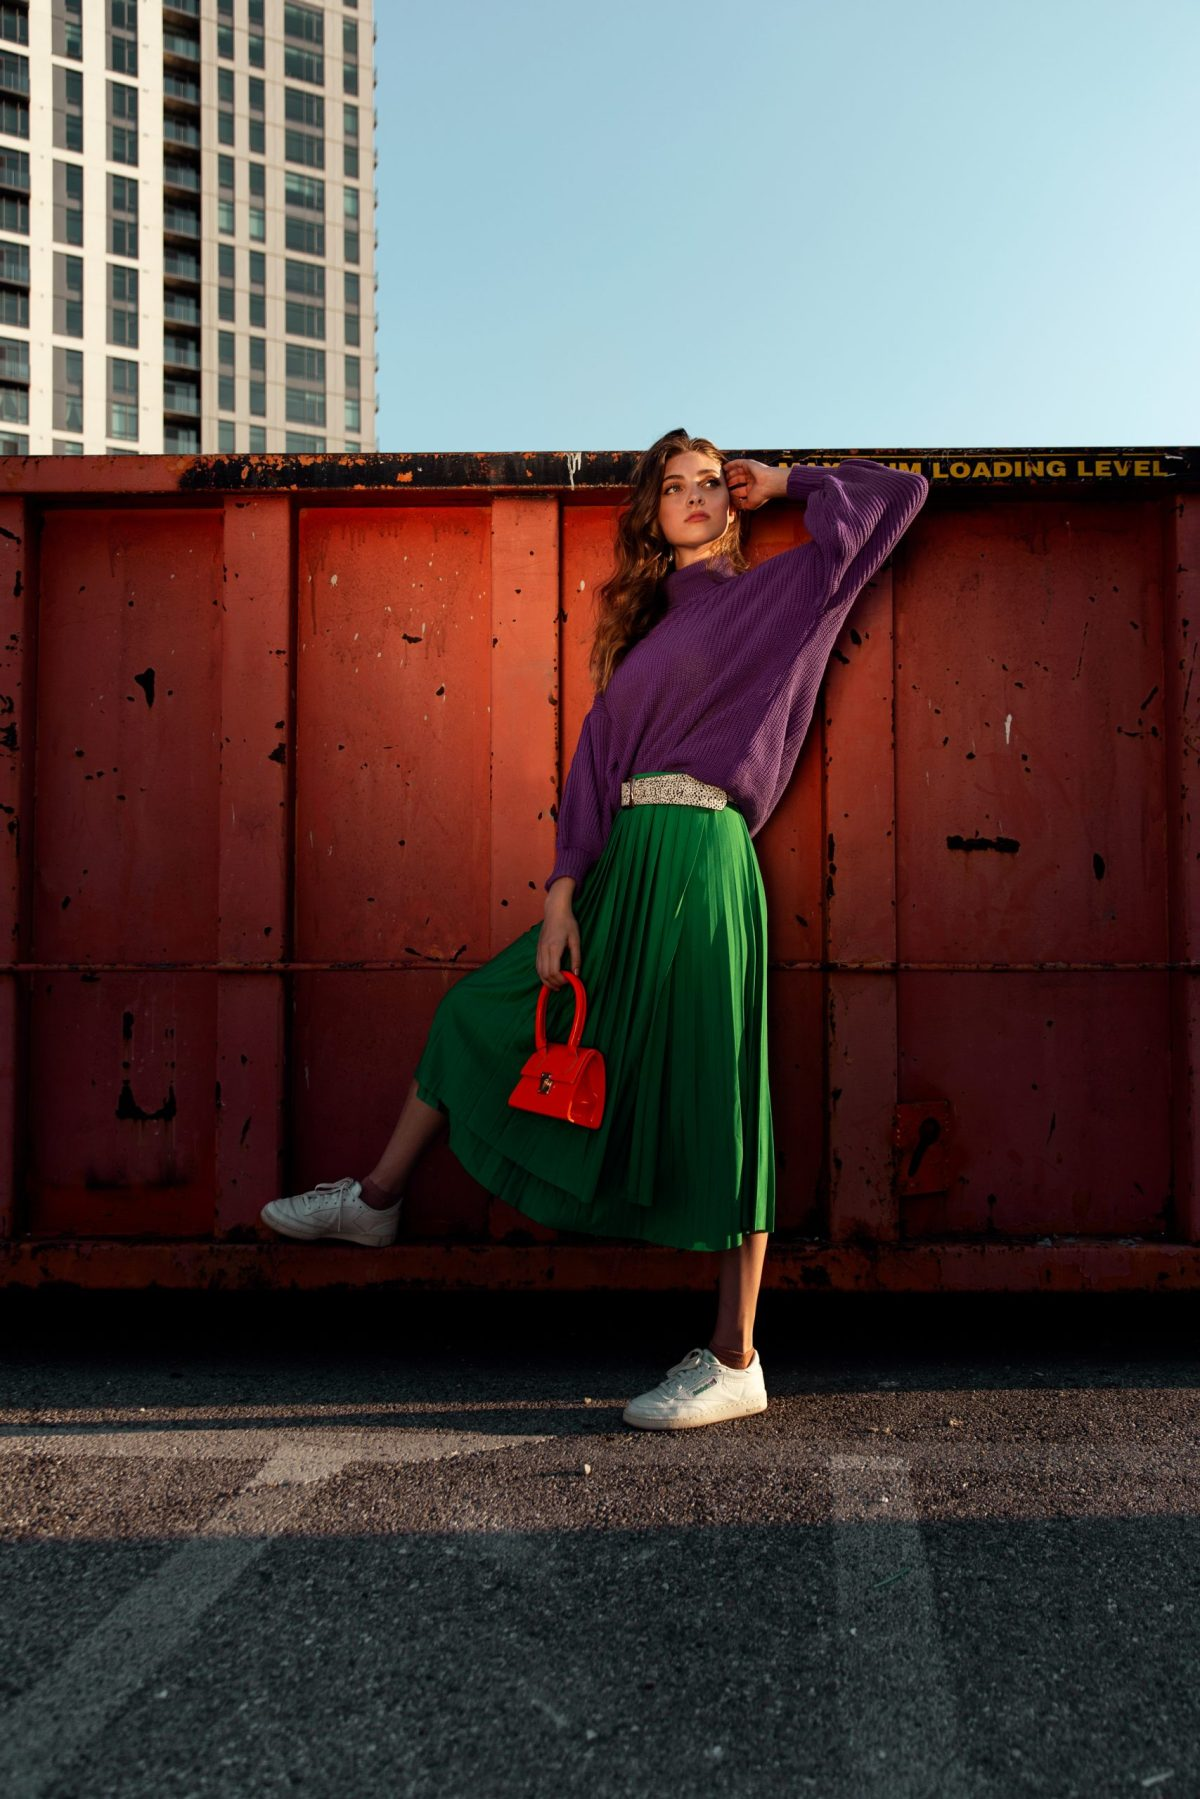 Elizabeth Moffitt in 'Color Blocking' Photographed and styled by Marissa Morris.